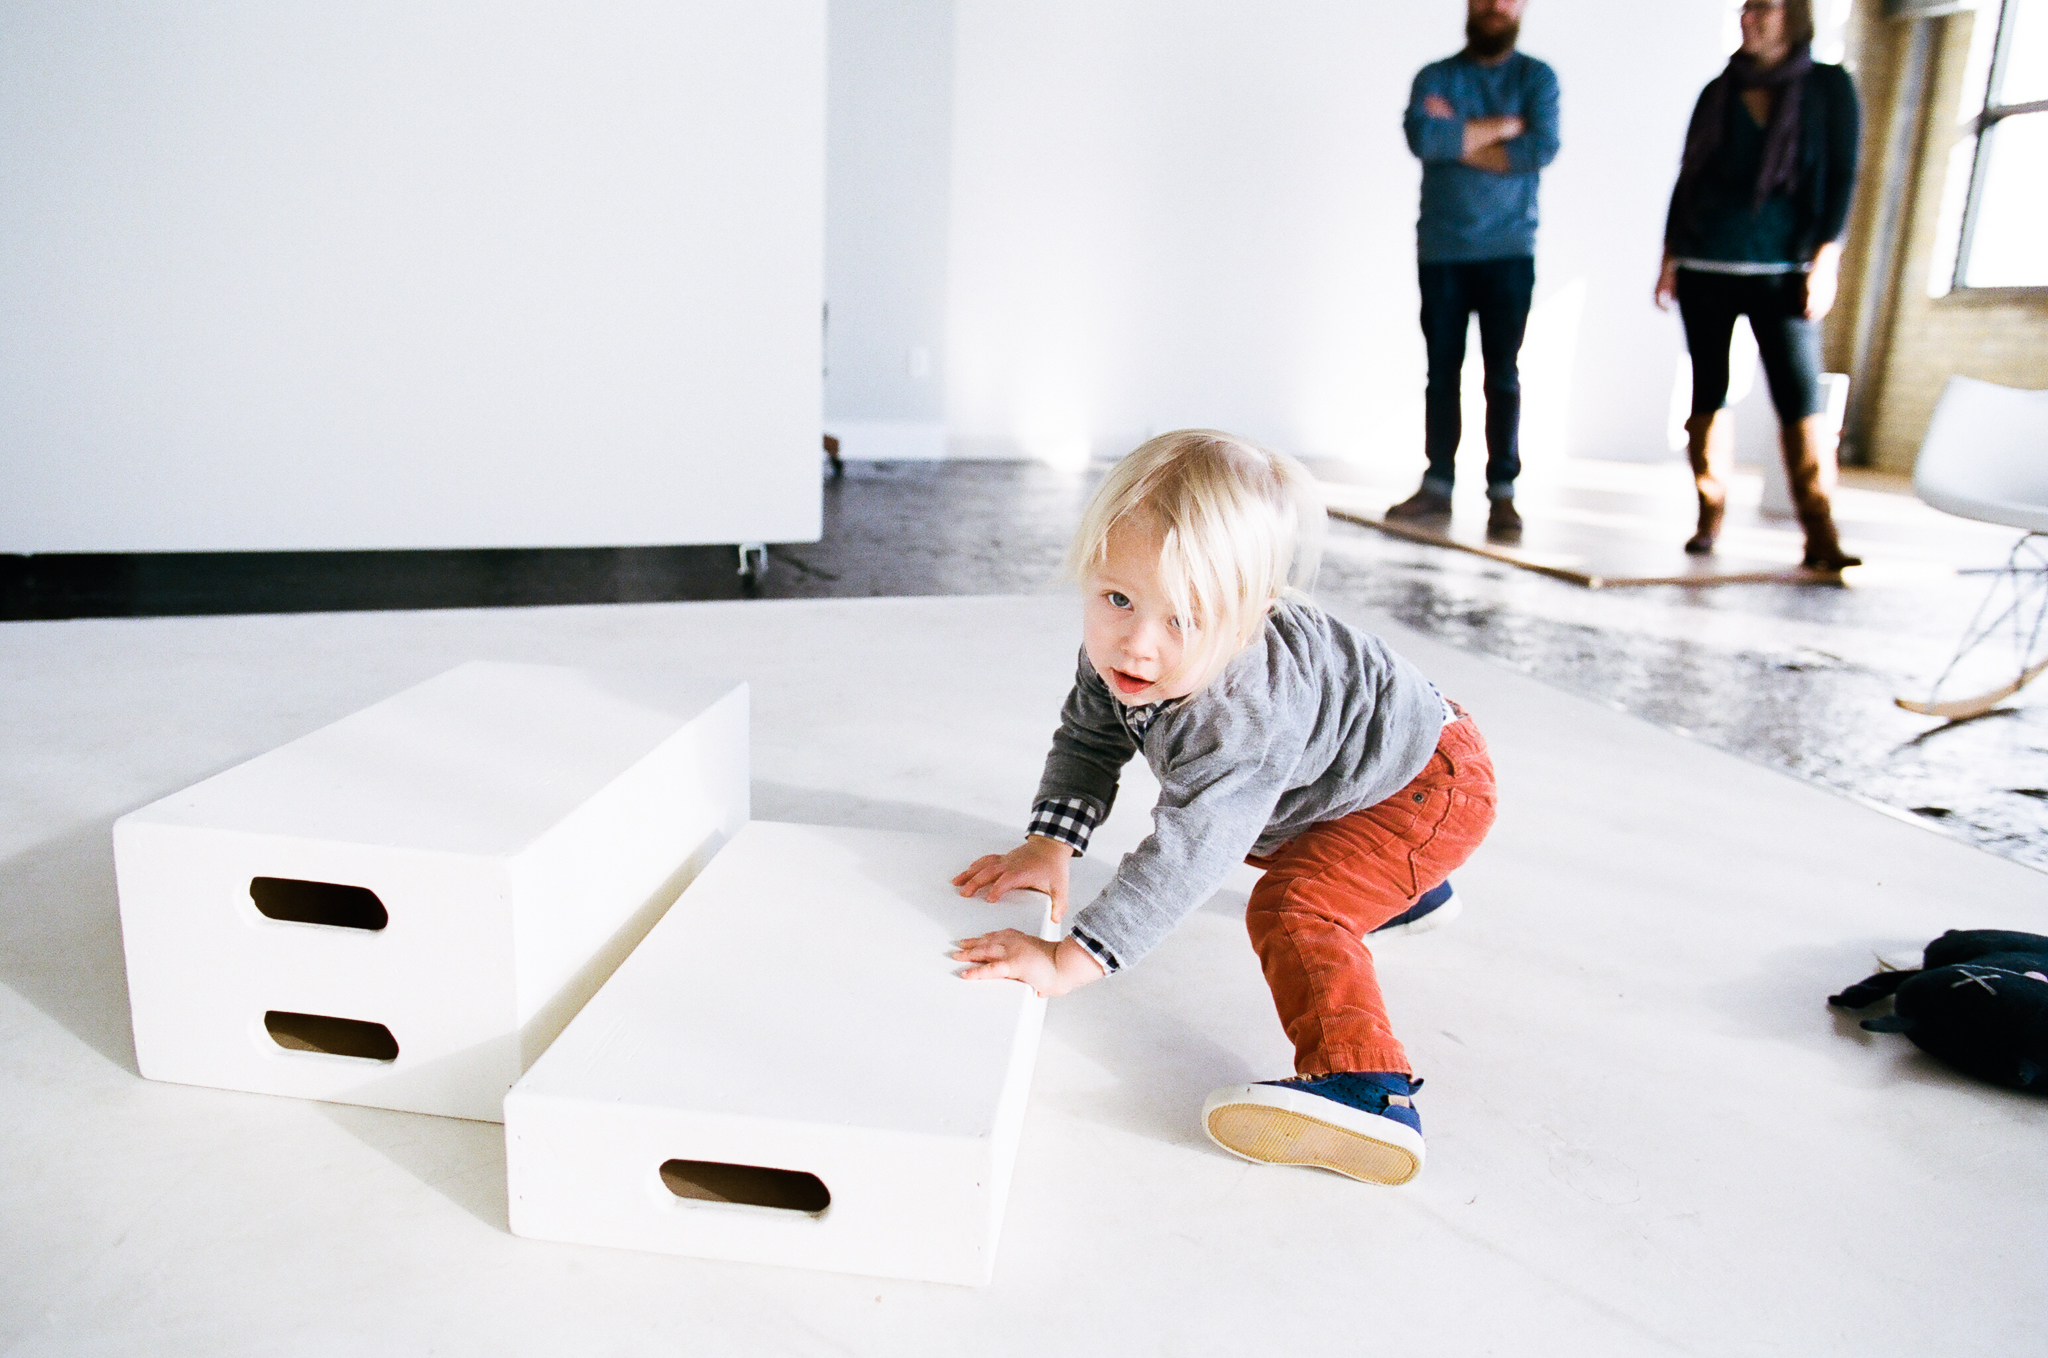 Young boy stacking apple boxes.